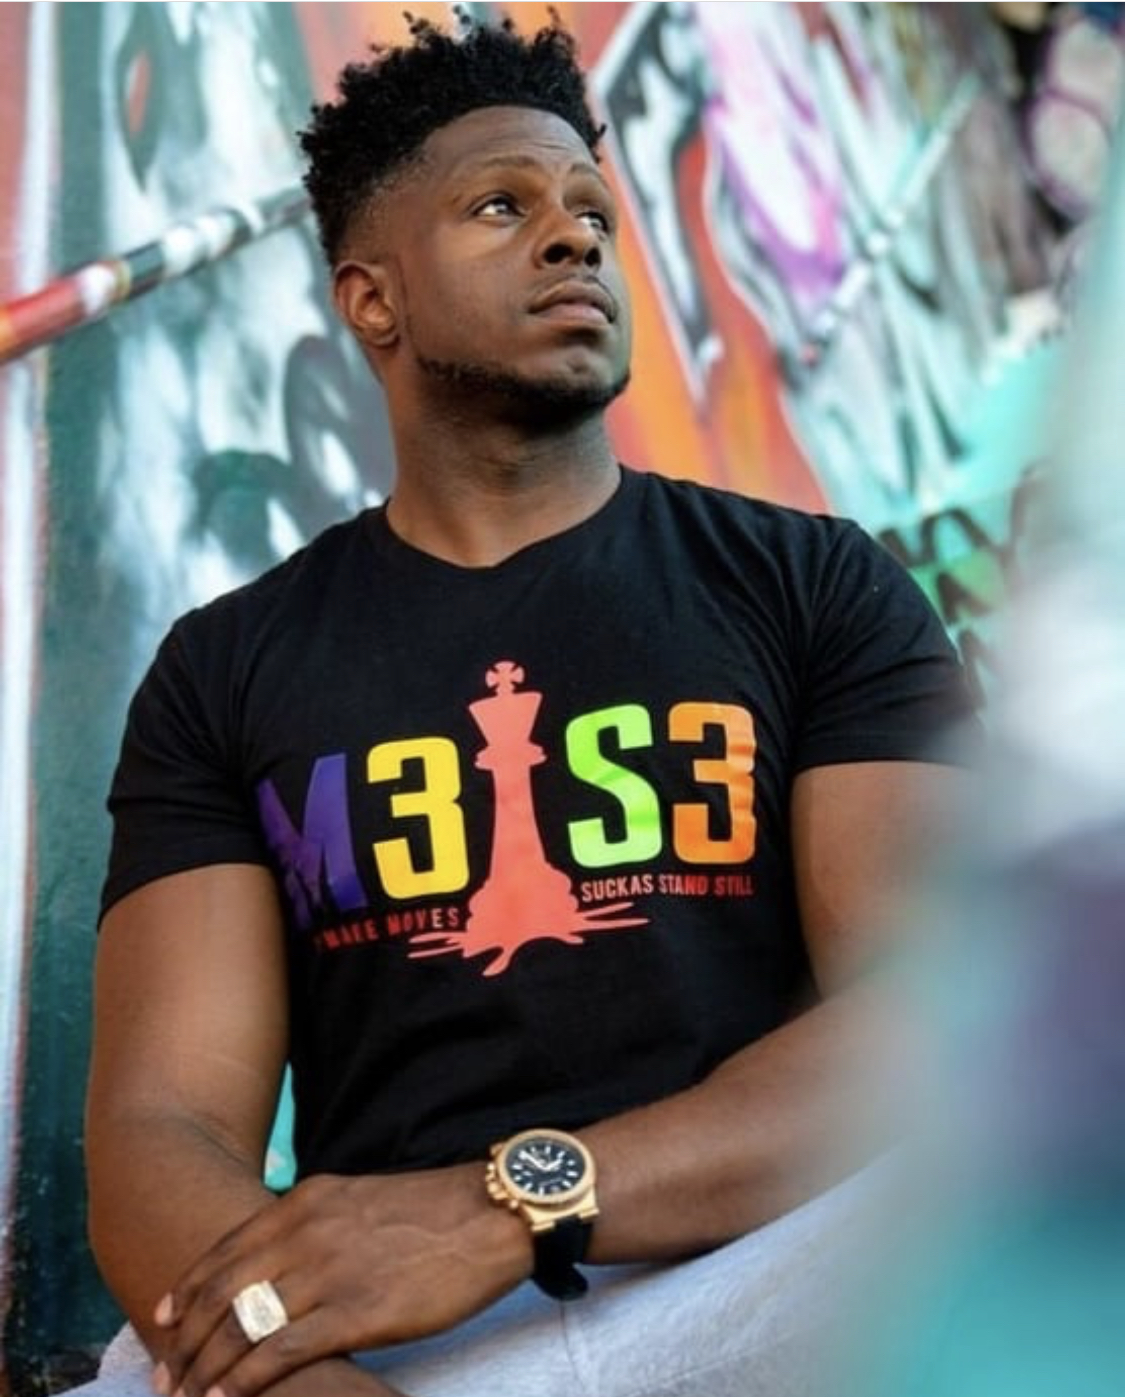 CEO of M3S3 Apparel Fred Thompson talks his Vision, Brand, and Future of M3S3 Apparel